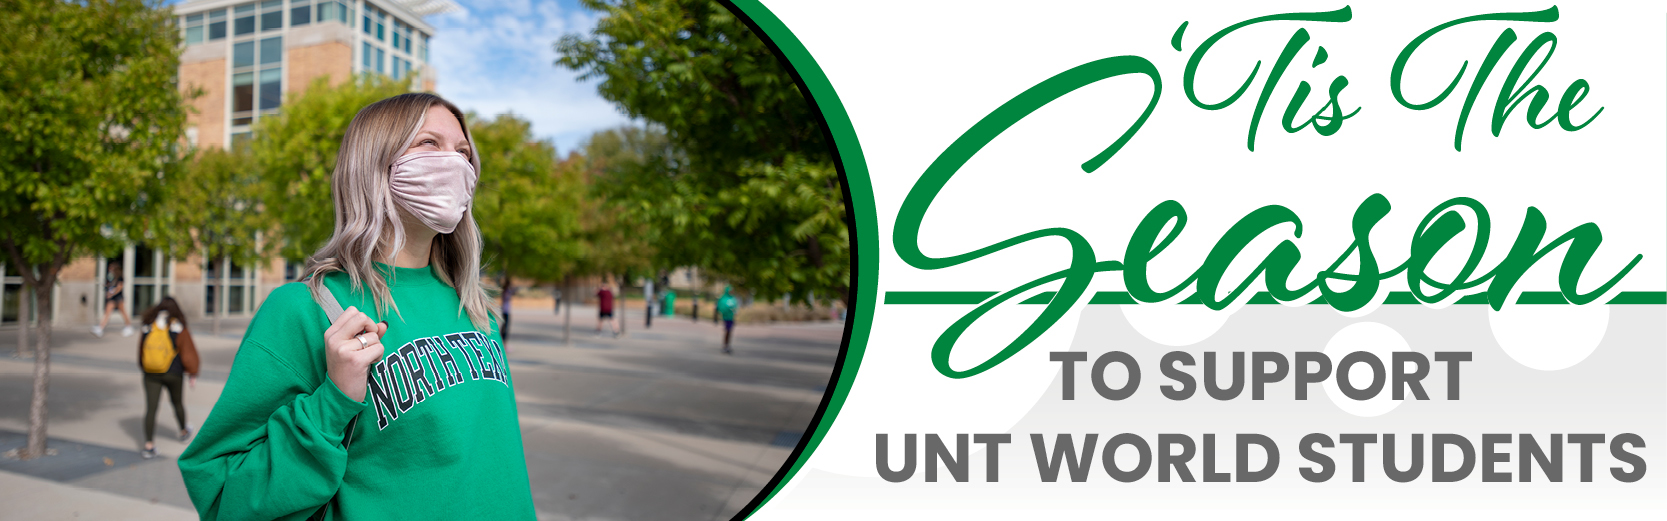 Tis the season to support UNT World students